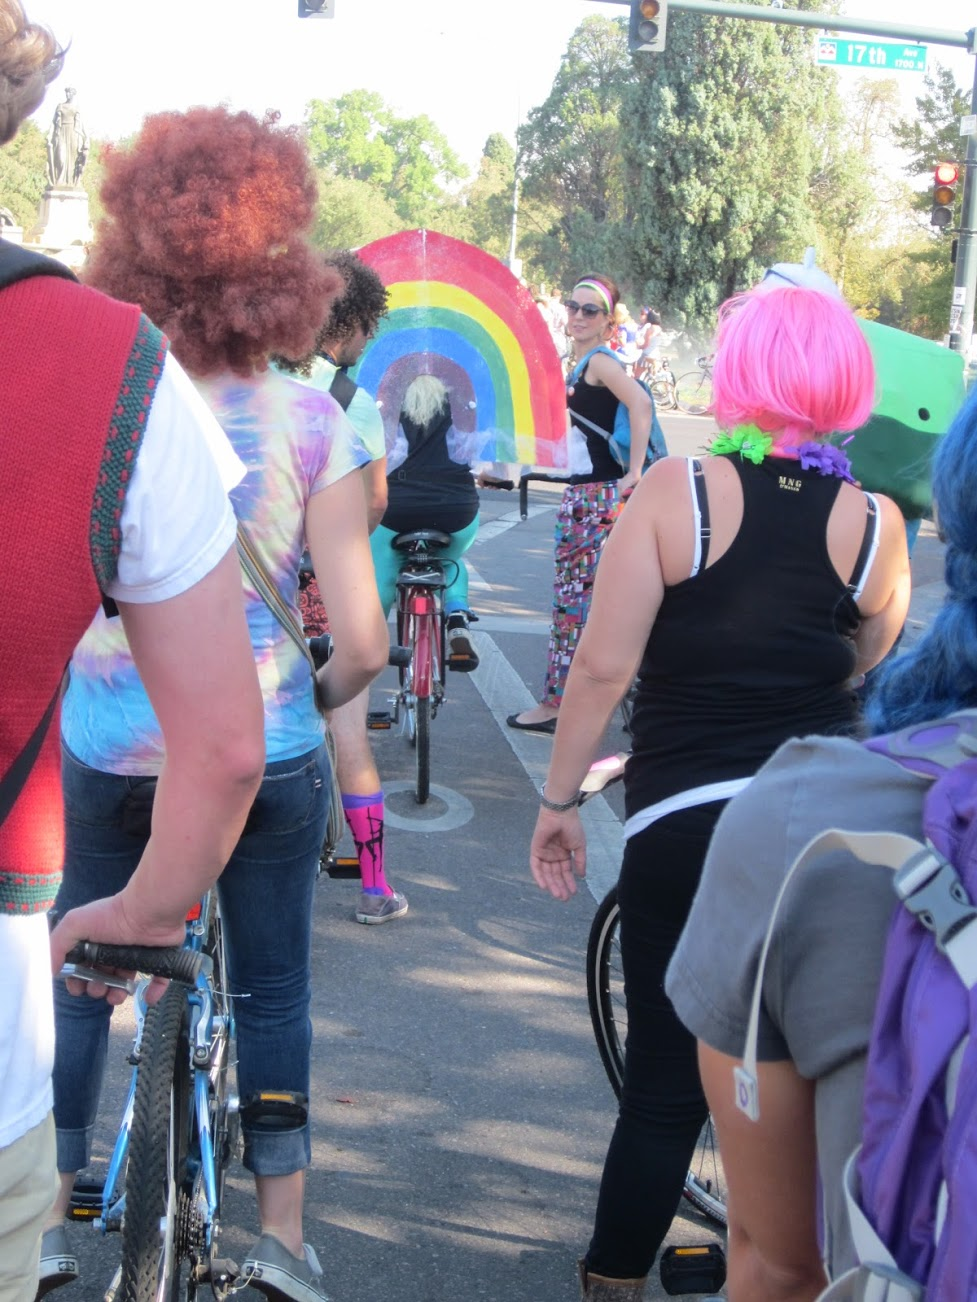 September 2012. Tour De Fat bicycle parade, City Park, Denver, Colorado. I realize I'm bending the rules with this one. Still, I want to celebrate this woman's ingenuity at creating a rainbow to follow her everywhere.